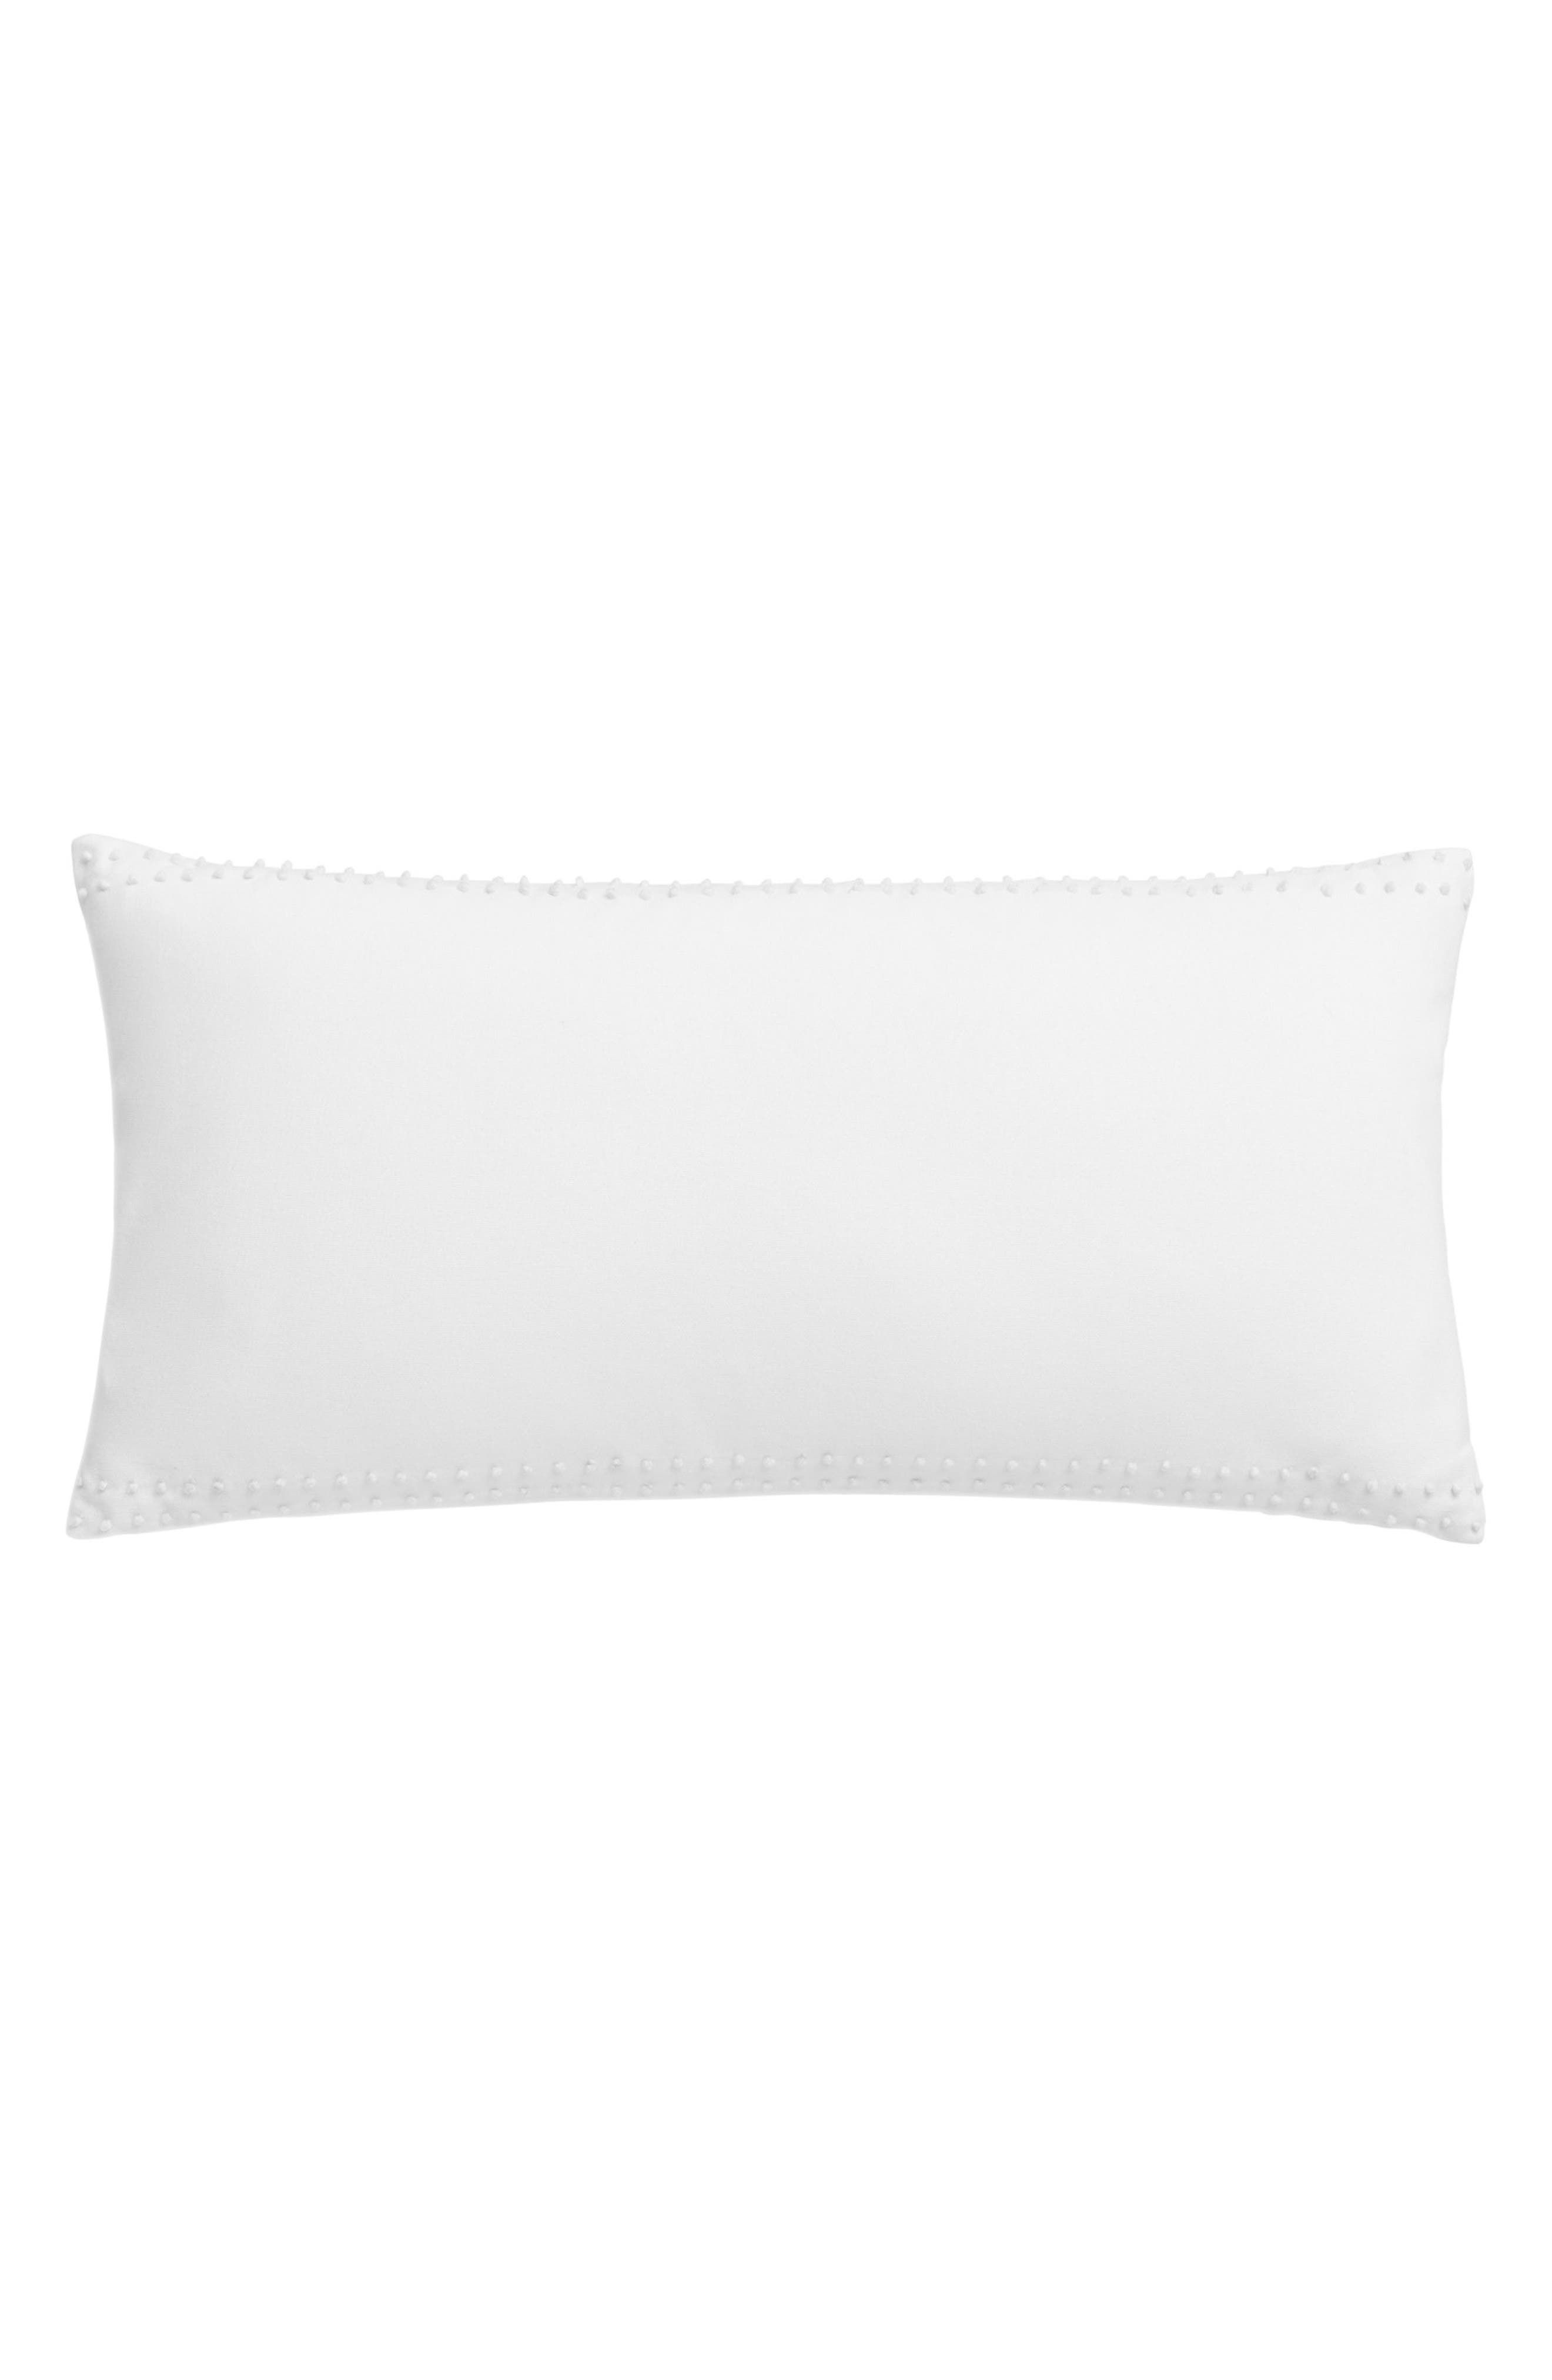 Blackpoint Hex Pillow,                         Main,                         color, 100